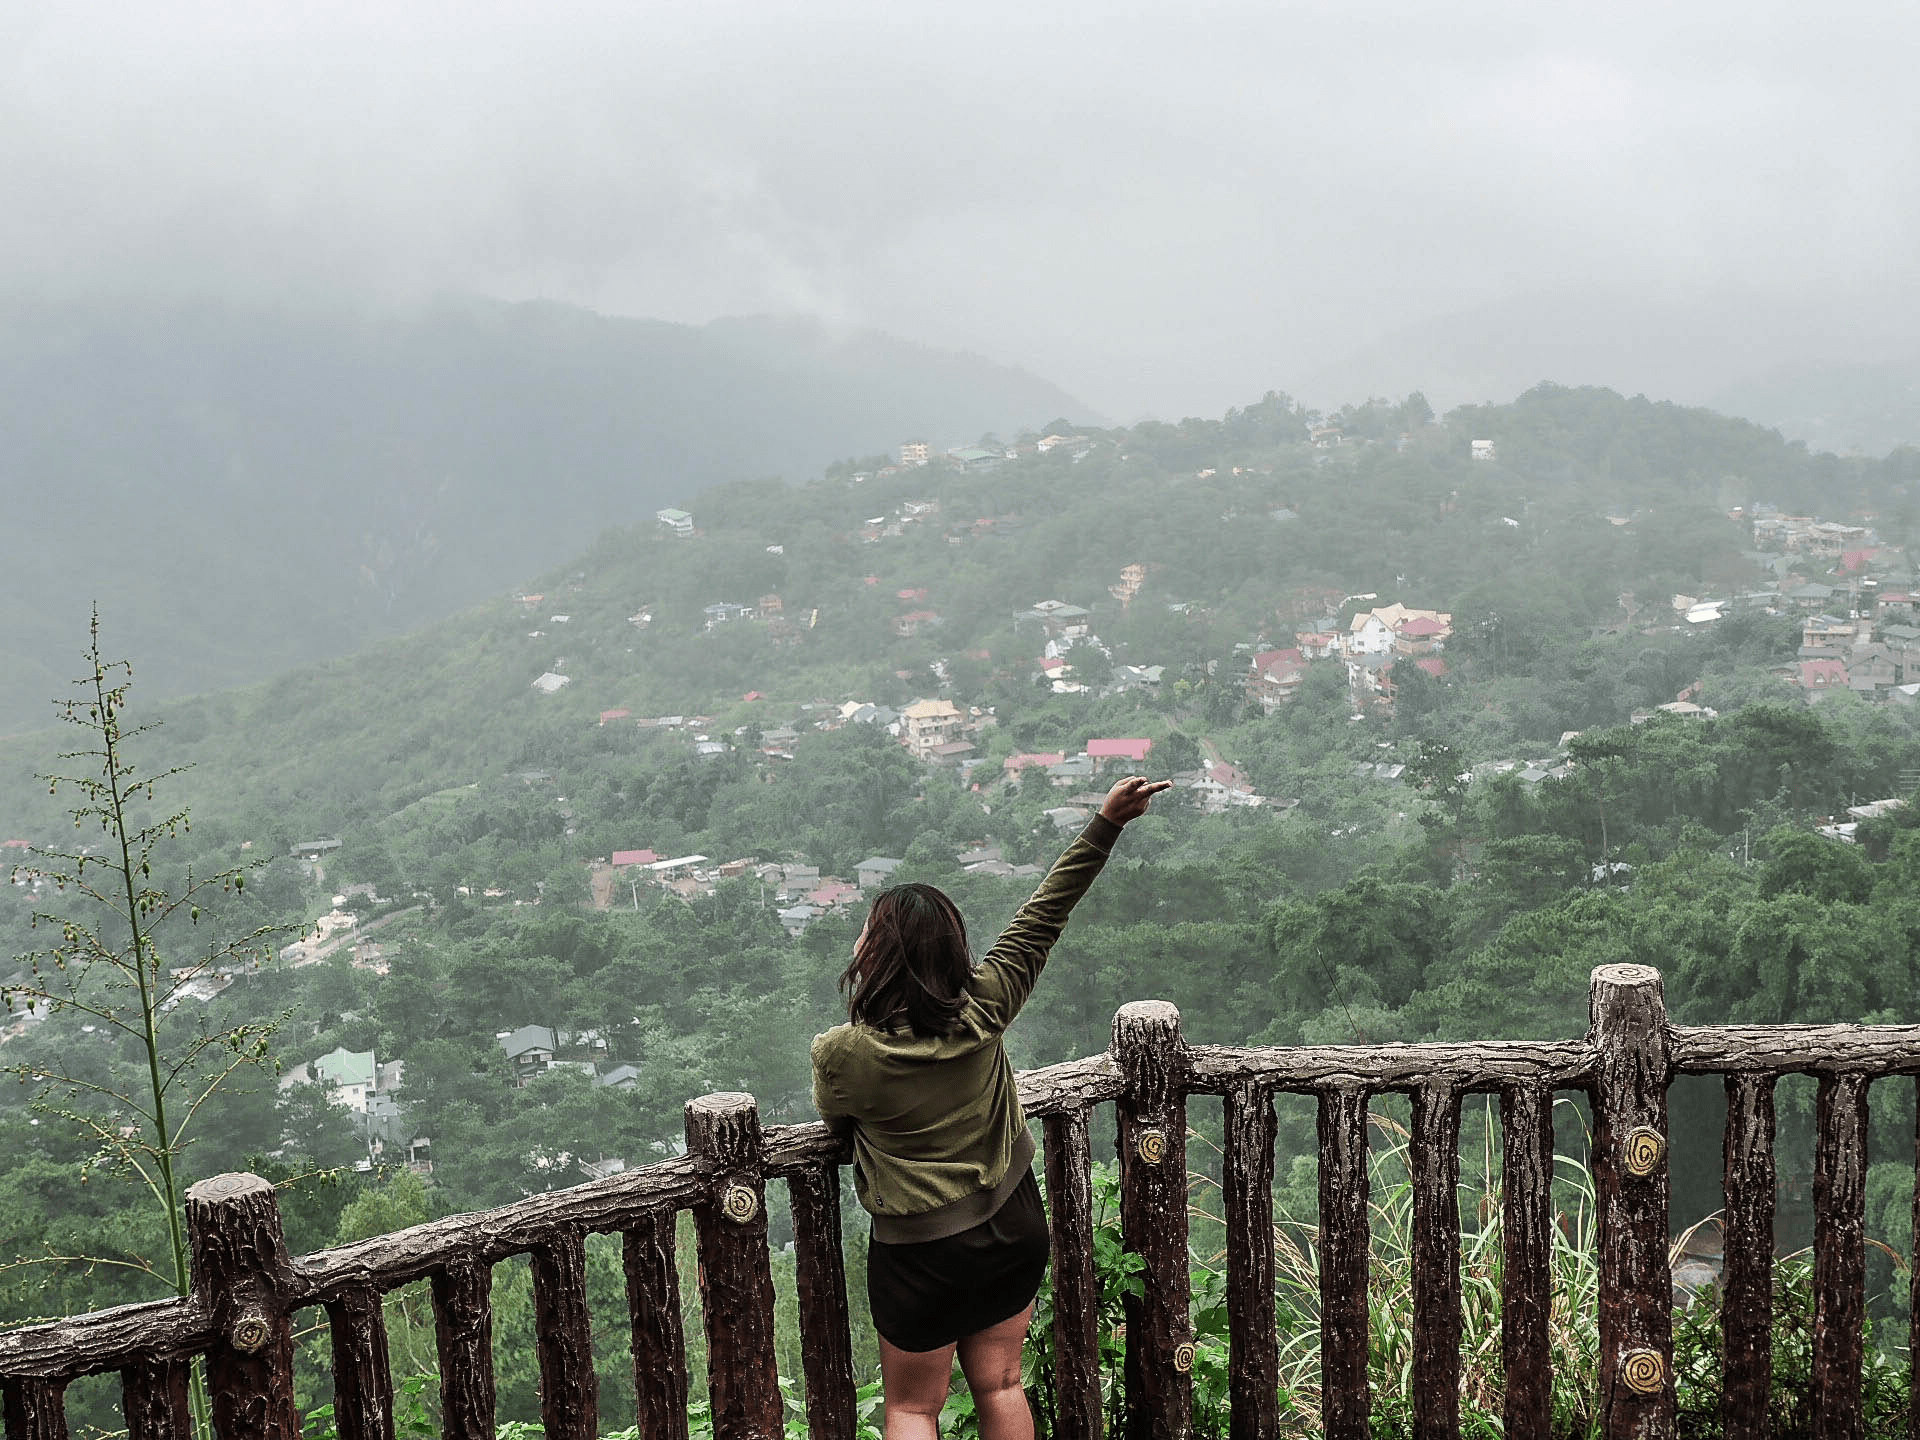 Melody somido filipina waving at valley Mines View Park baguio city philippines